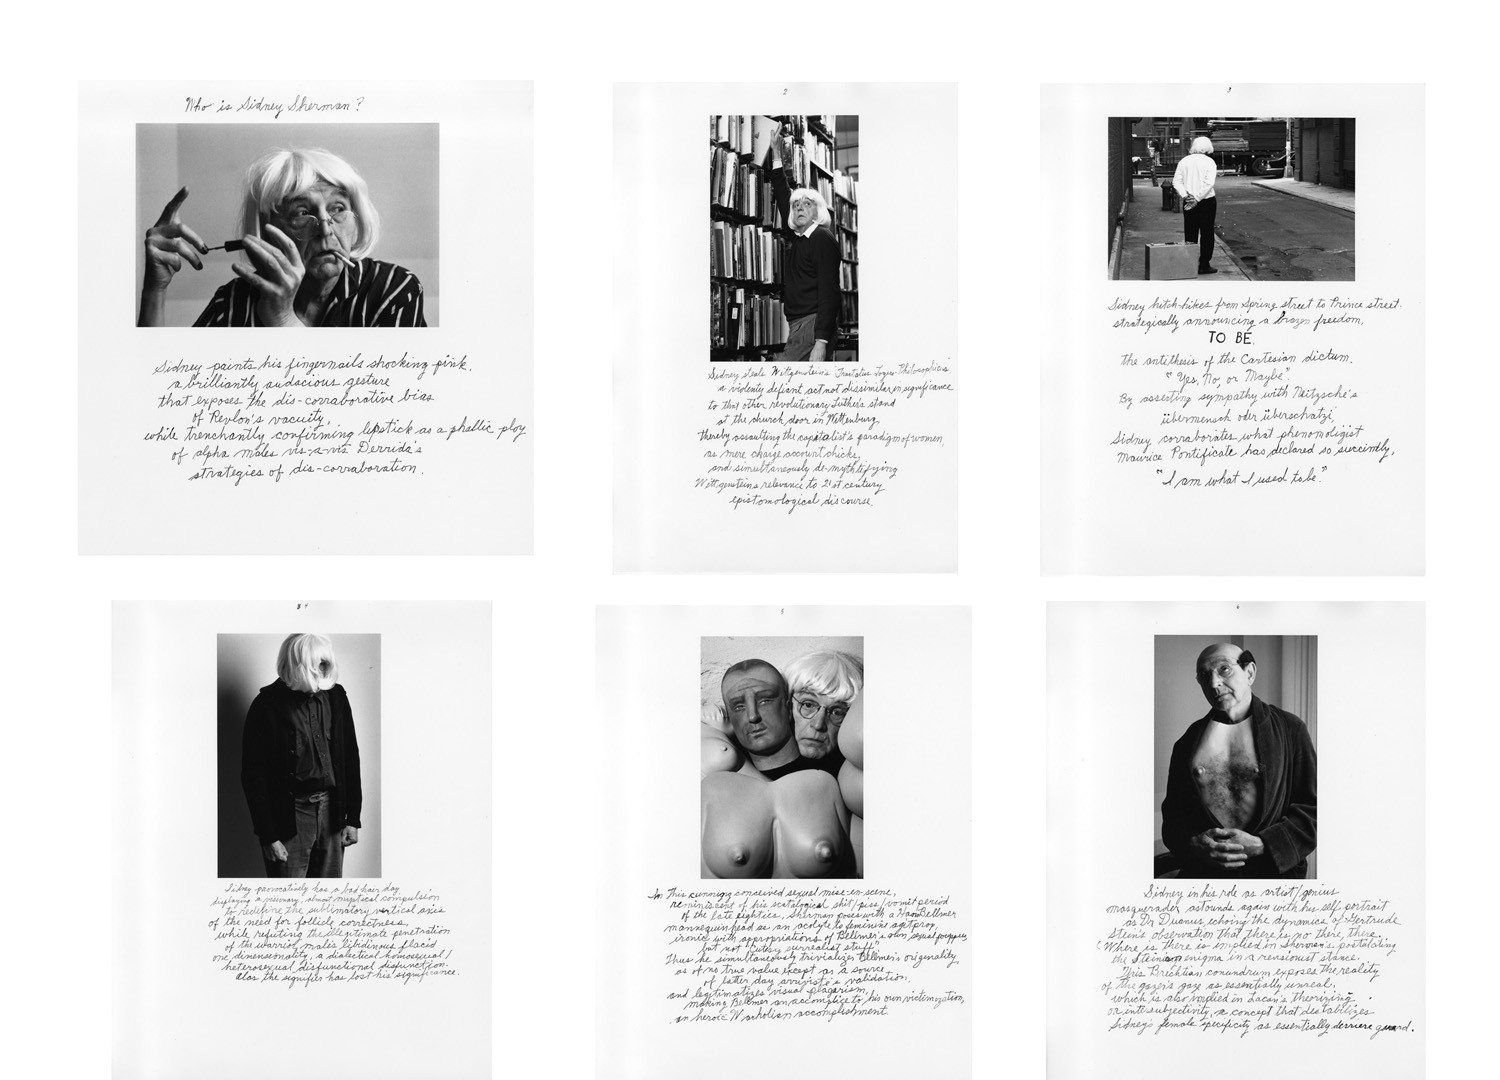 Duane Michals, Who is Sidney Sherman?, 2000